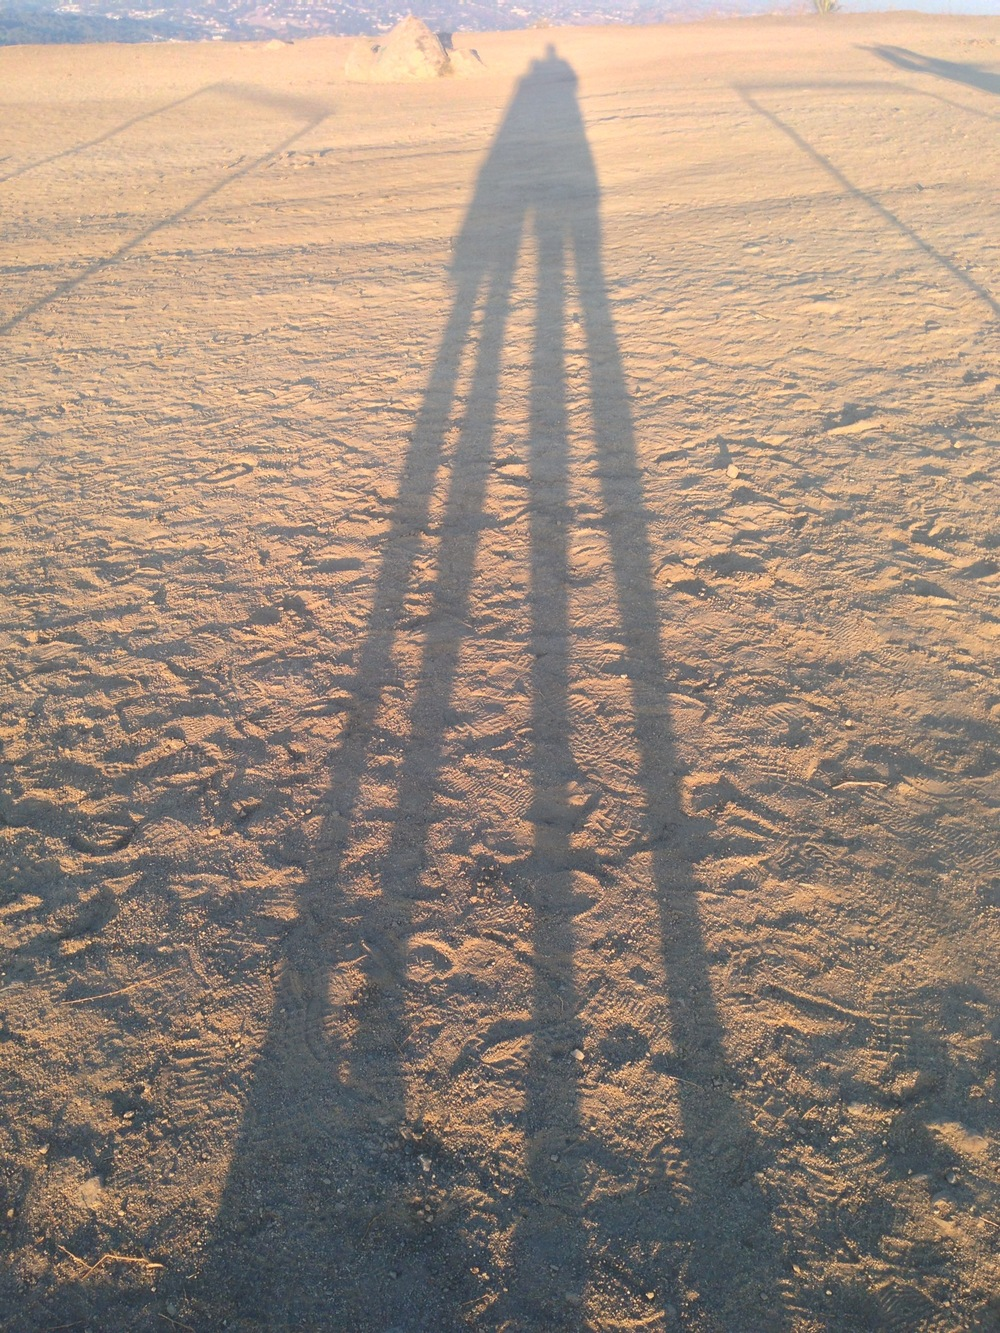 Our shadows at the top of a hill in Griffith Park.